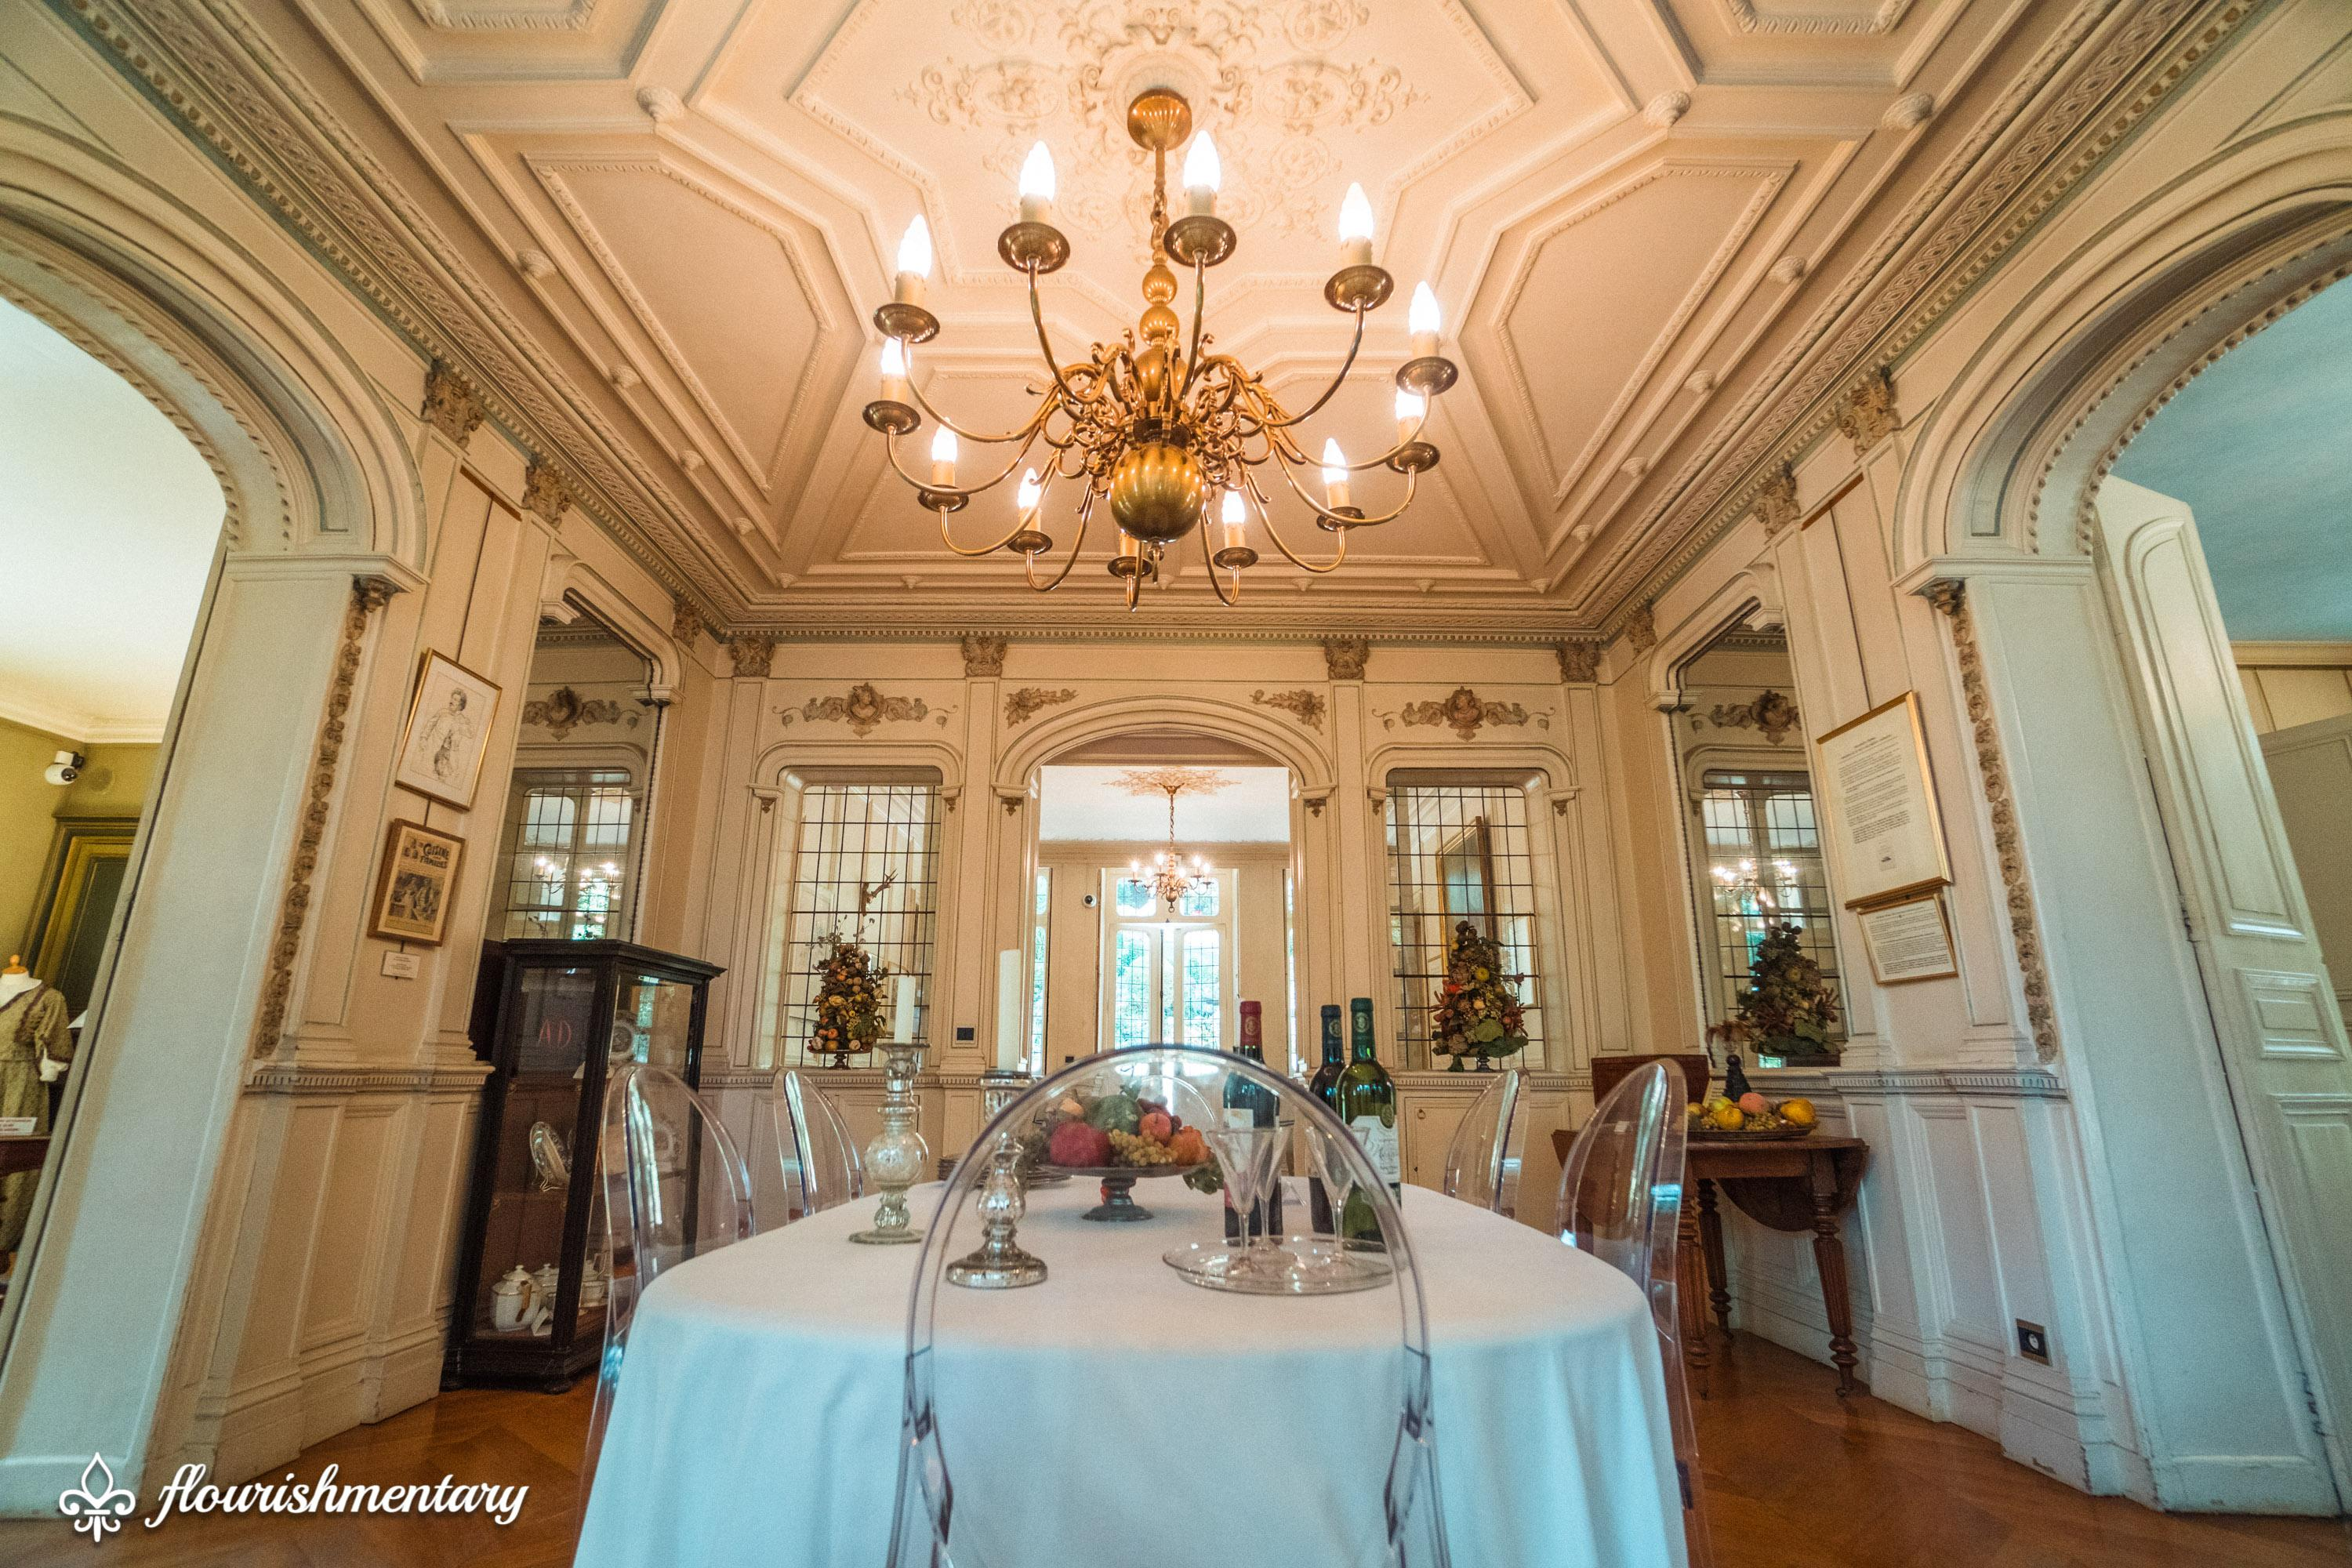 The Dining Room In The Chateau Of Monte Cristo